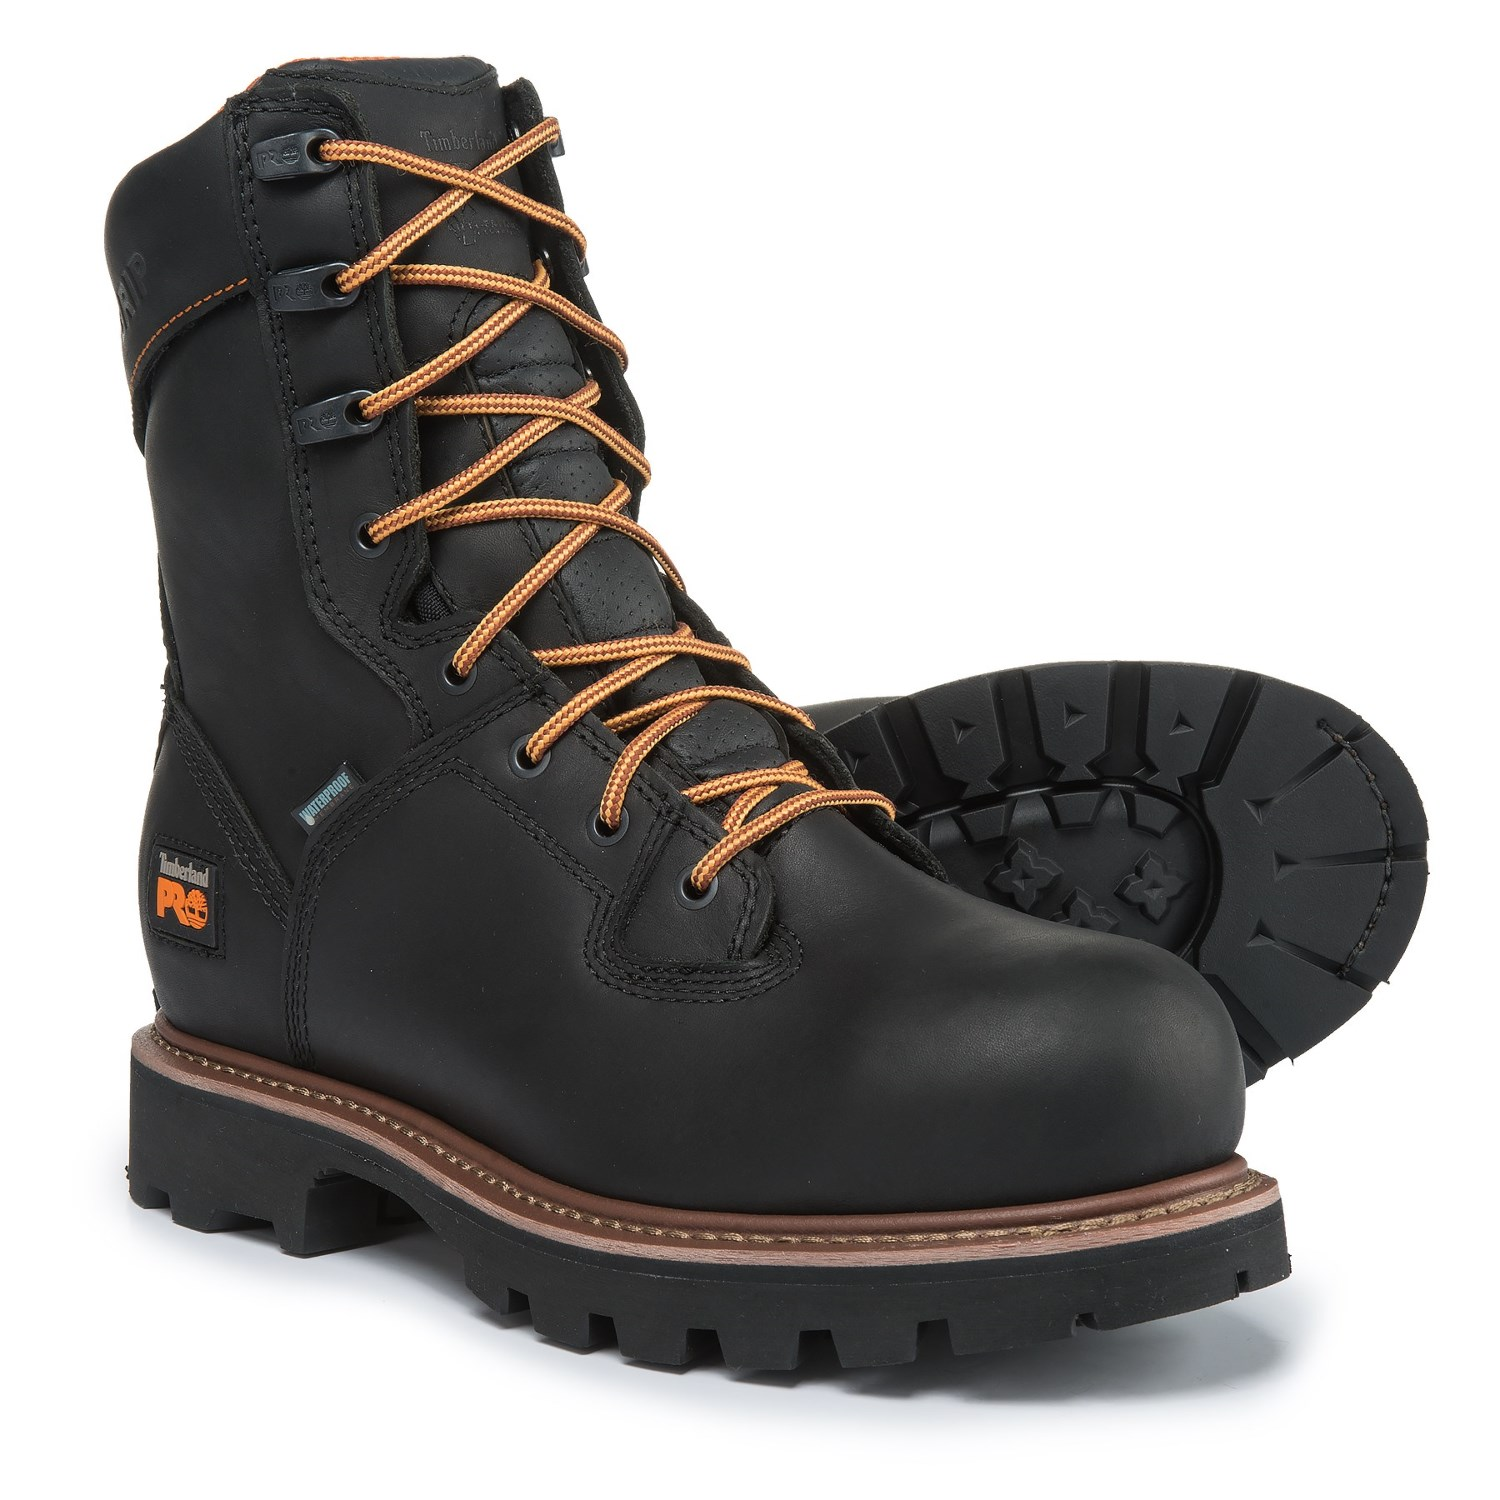 "Timberland PRO 8"" Crosscut Soft Toe Work Boots - Waterproof (For Men) in"